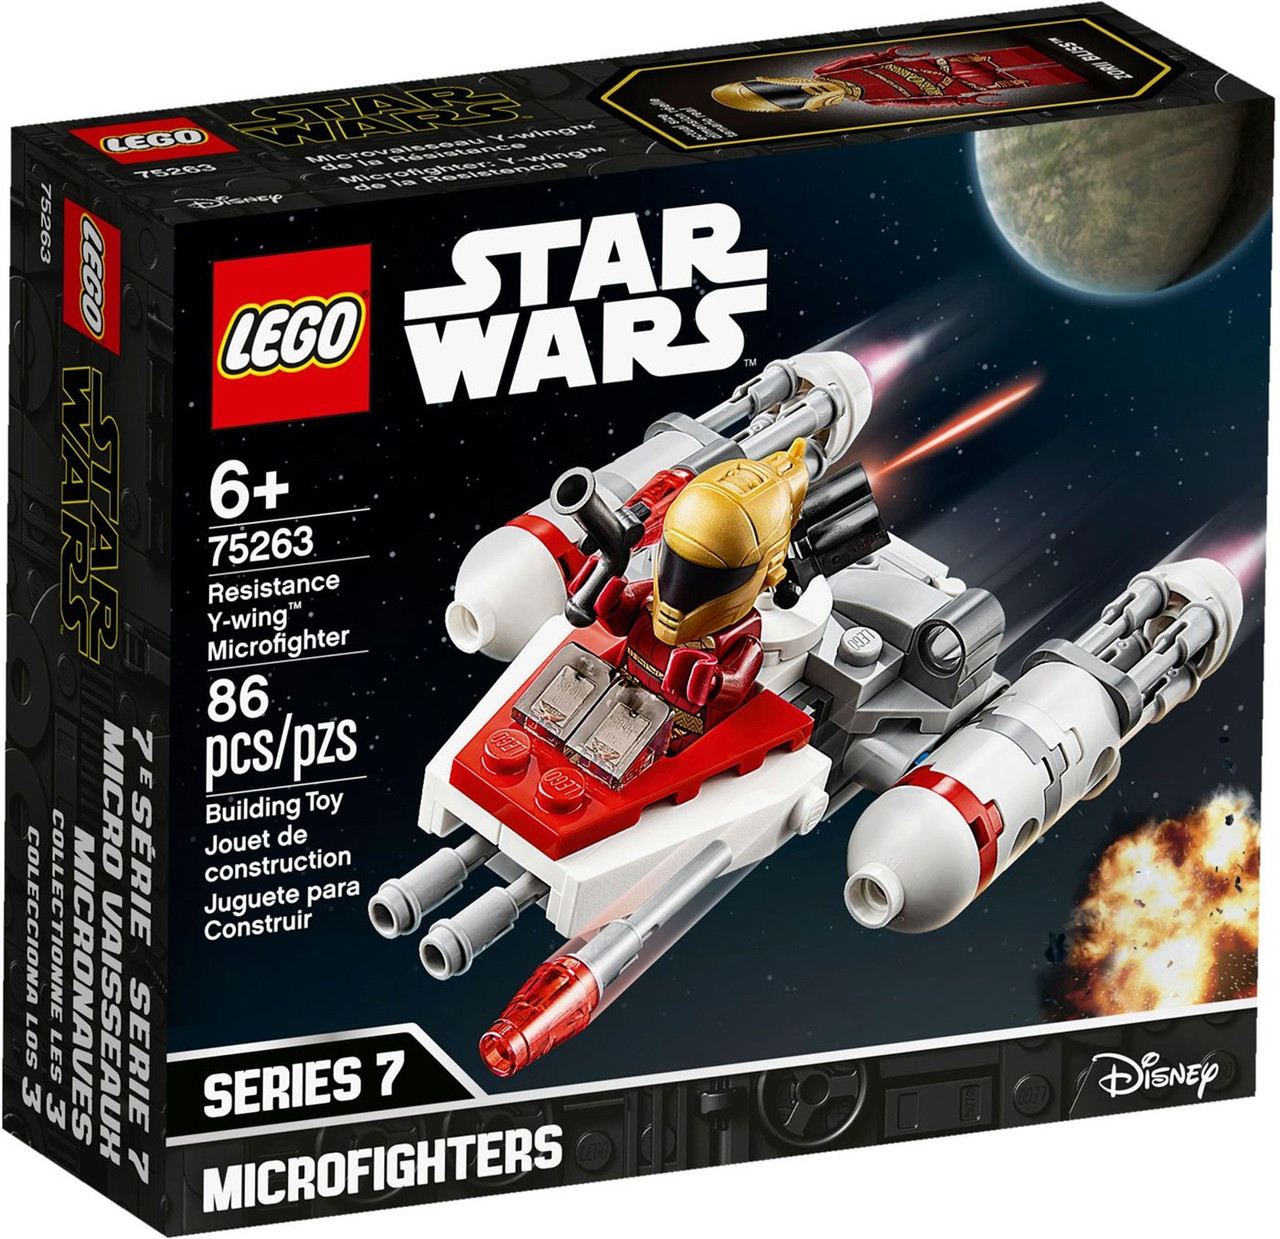 lego star wars microfighters series 7 resistance ywing